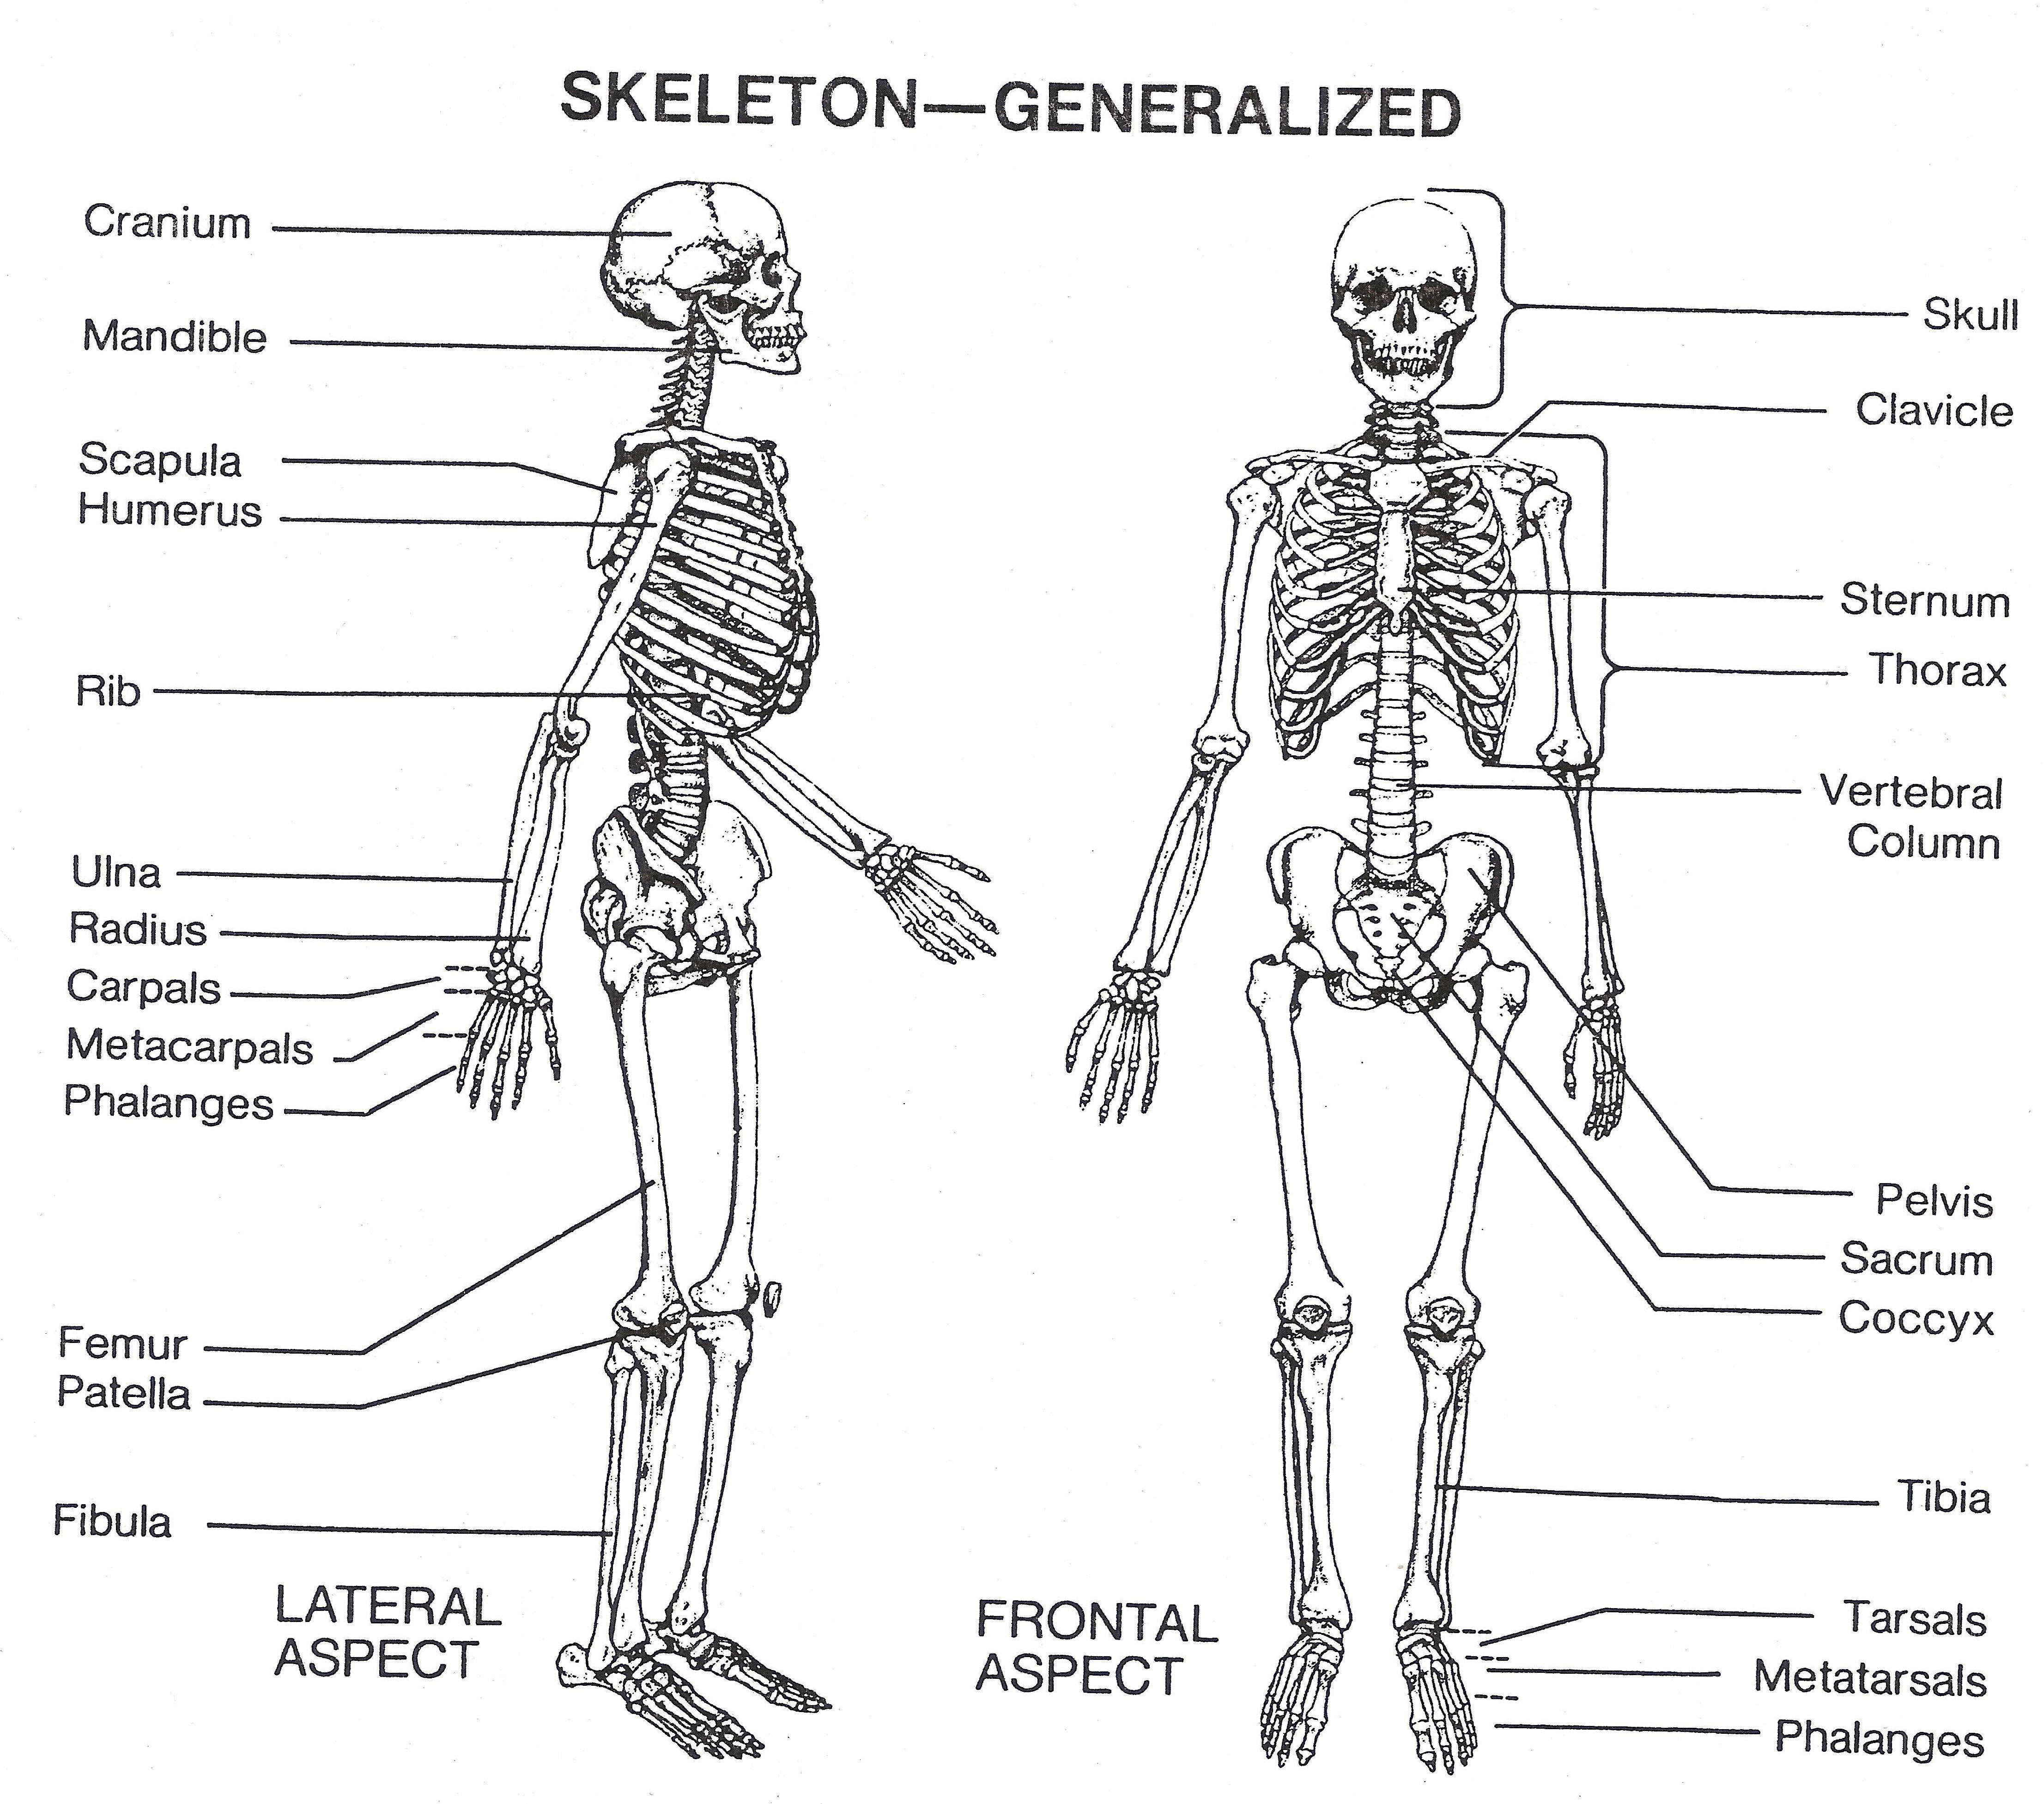 blank skeleton diagram to label front and back of the outstanding [ 4425 x 3905 Pixel ]